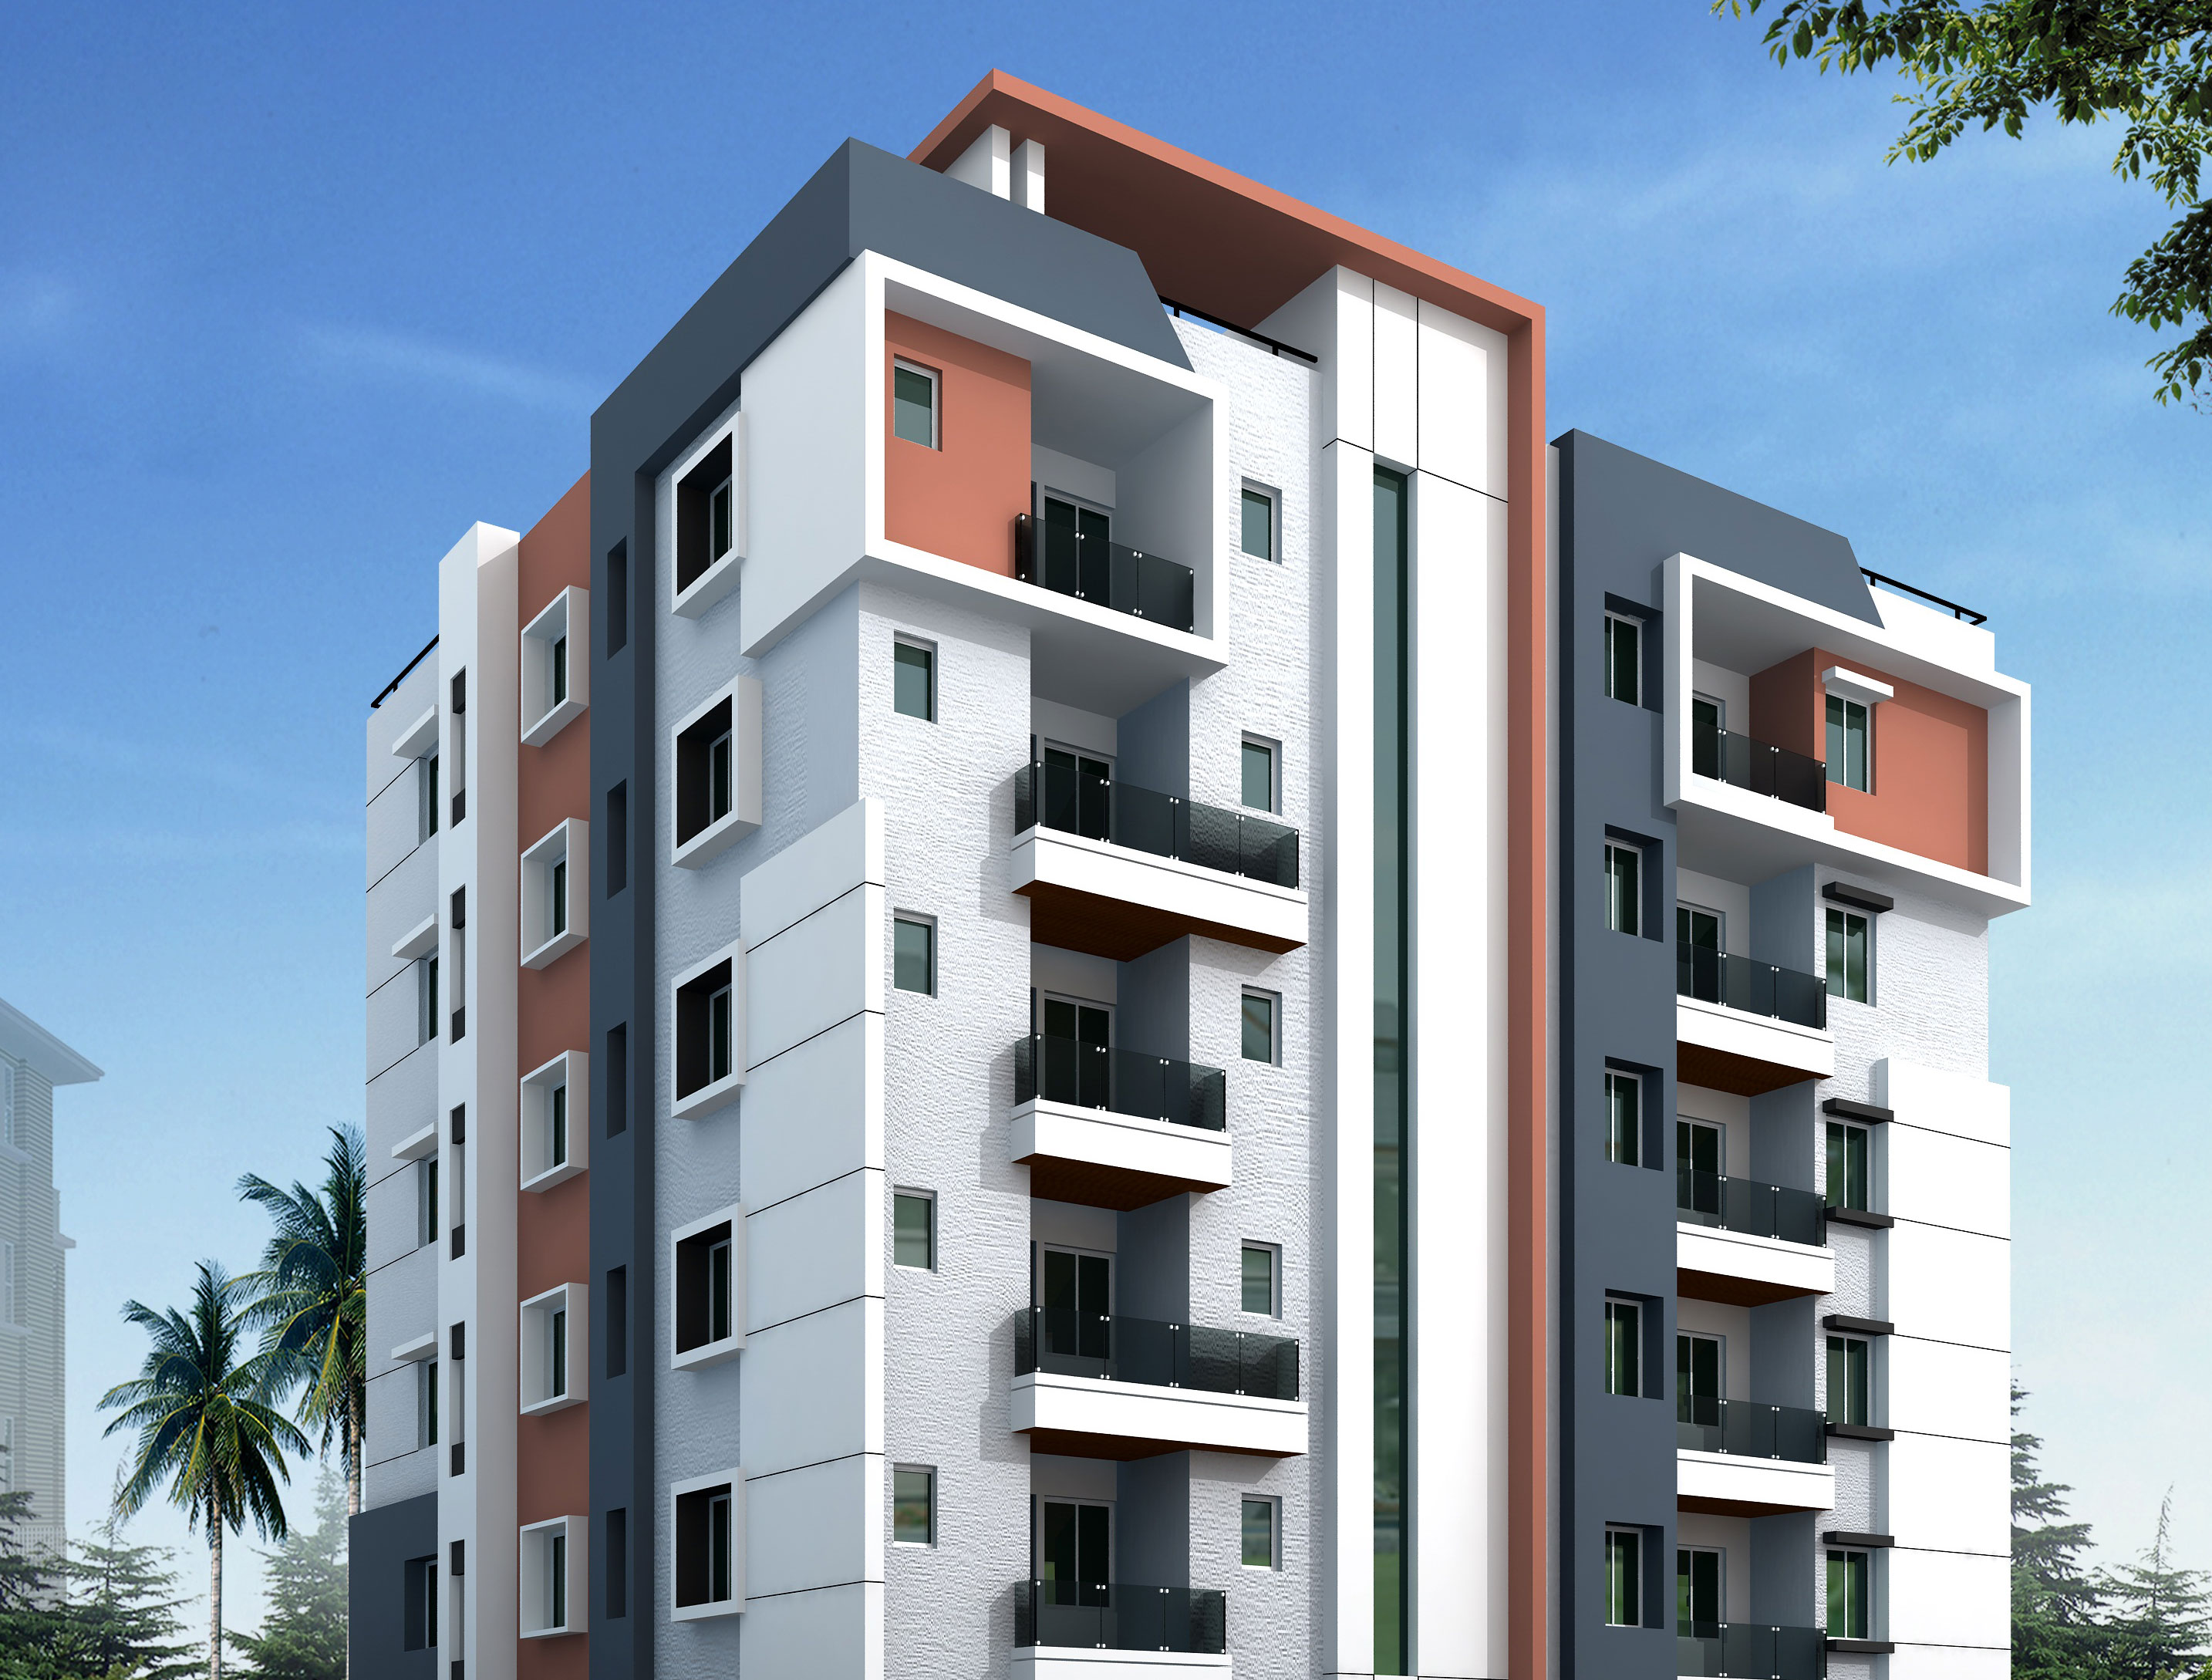 apartments for Sale in pm palem, vizag-real estate in vizag-indra teja